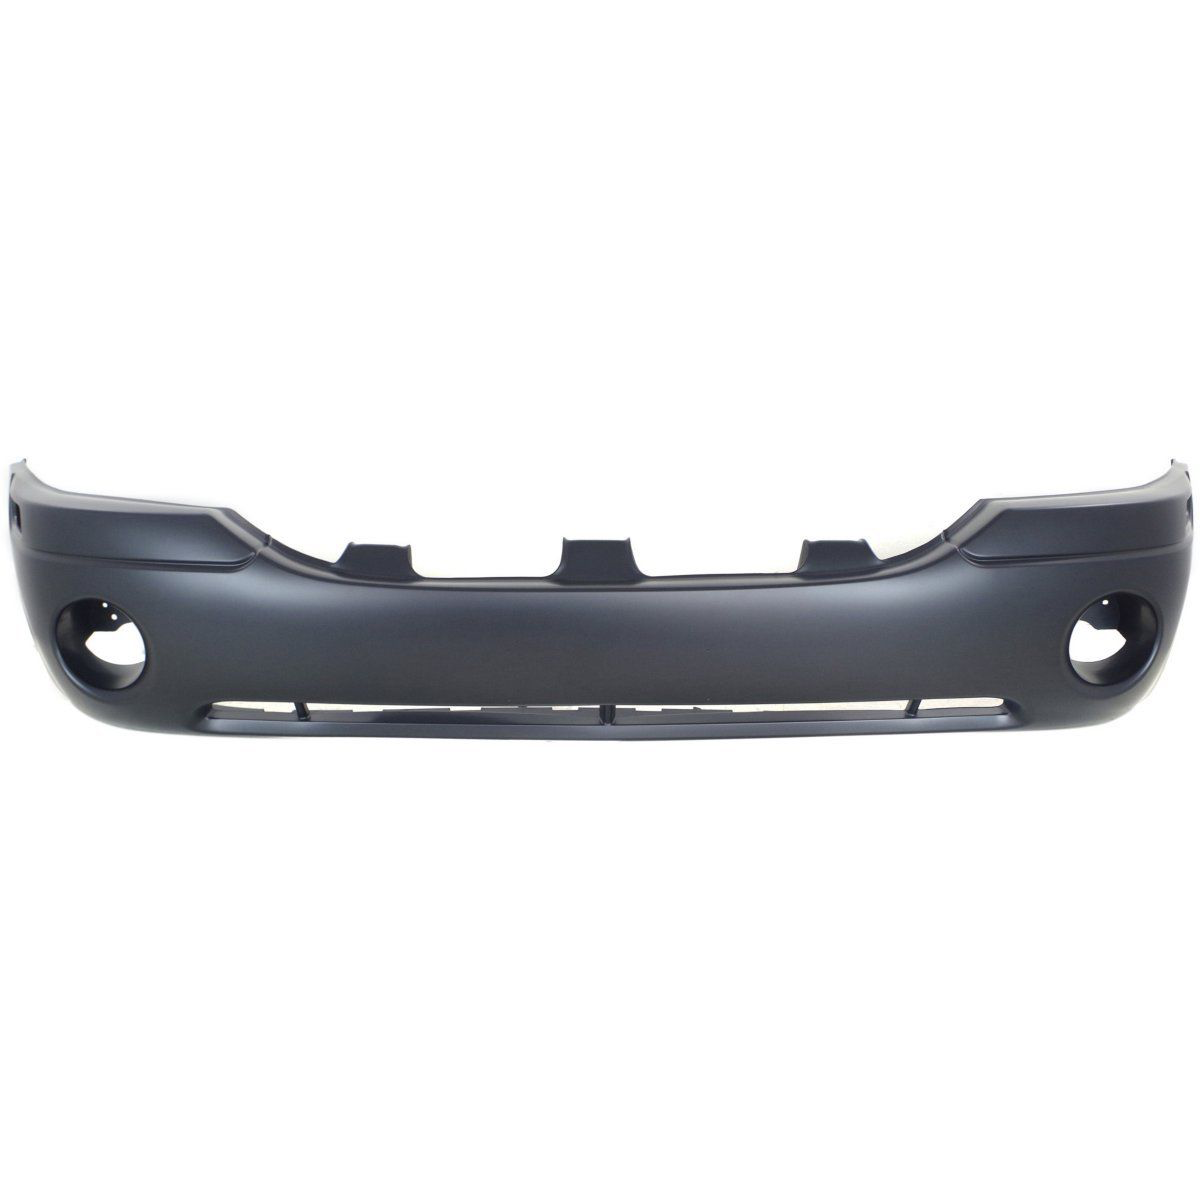 2002-2009 GMC ENVOY Front Bumper Cover Envoy Painted to Match